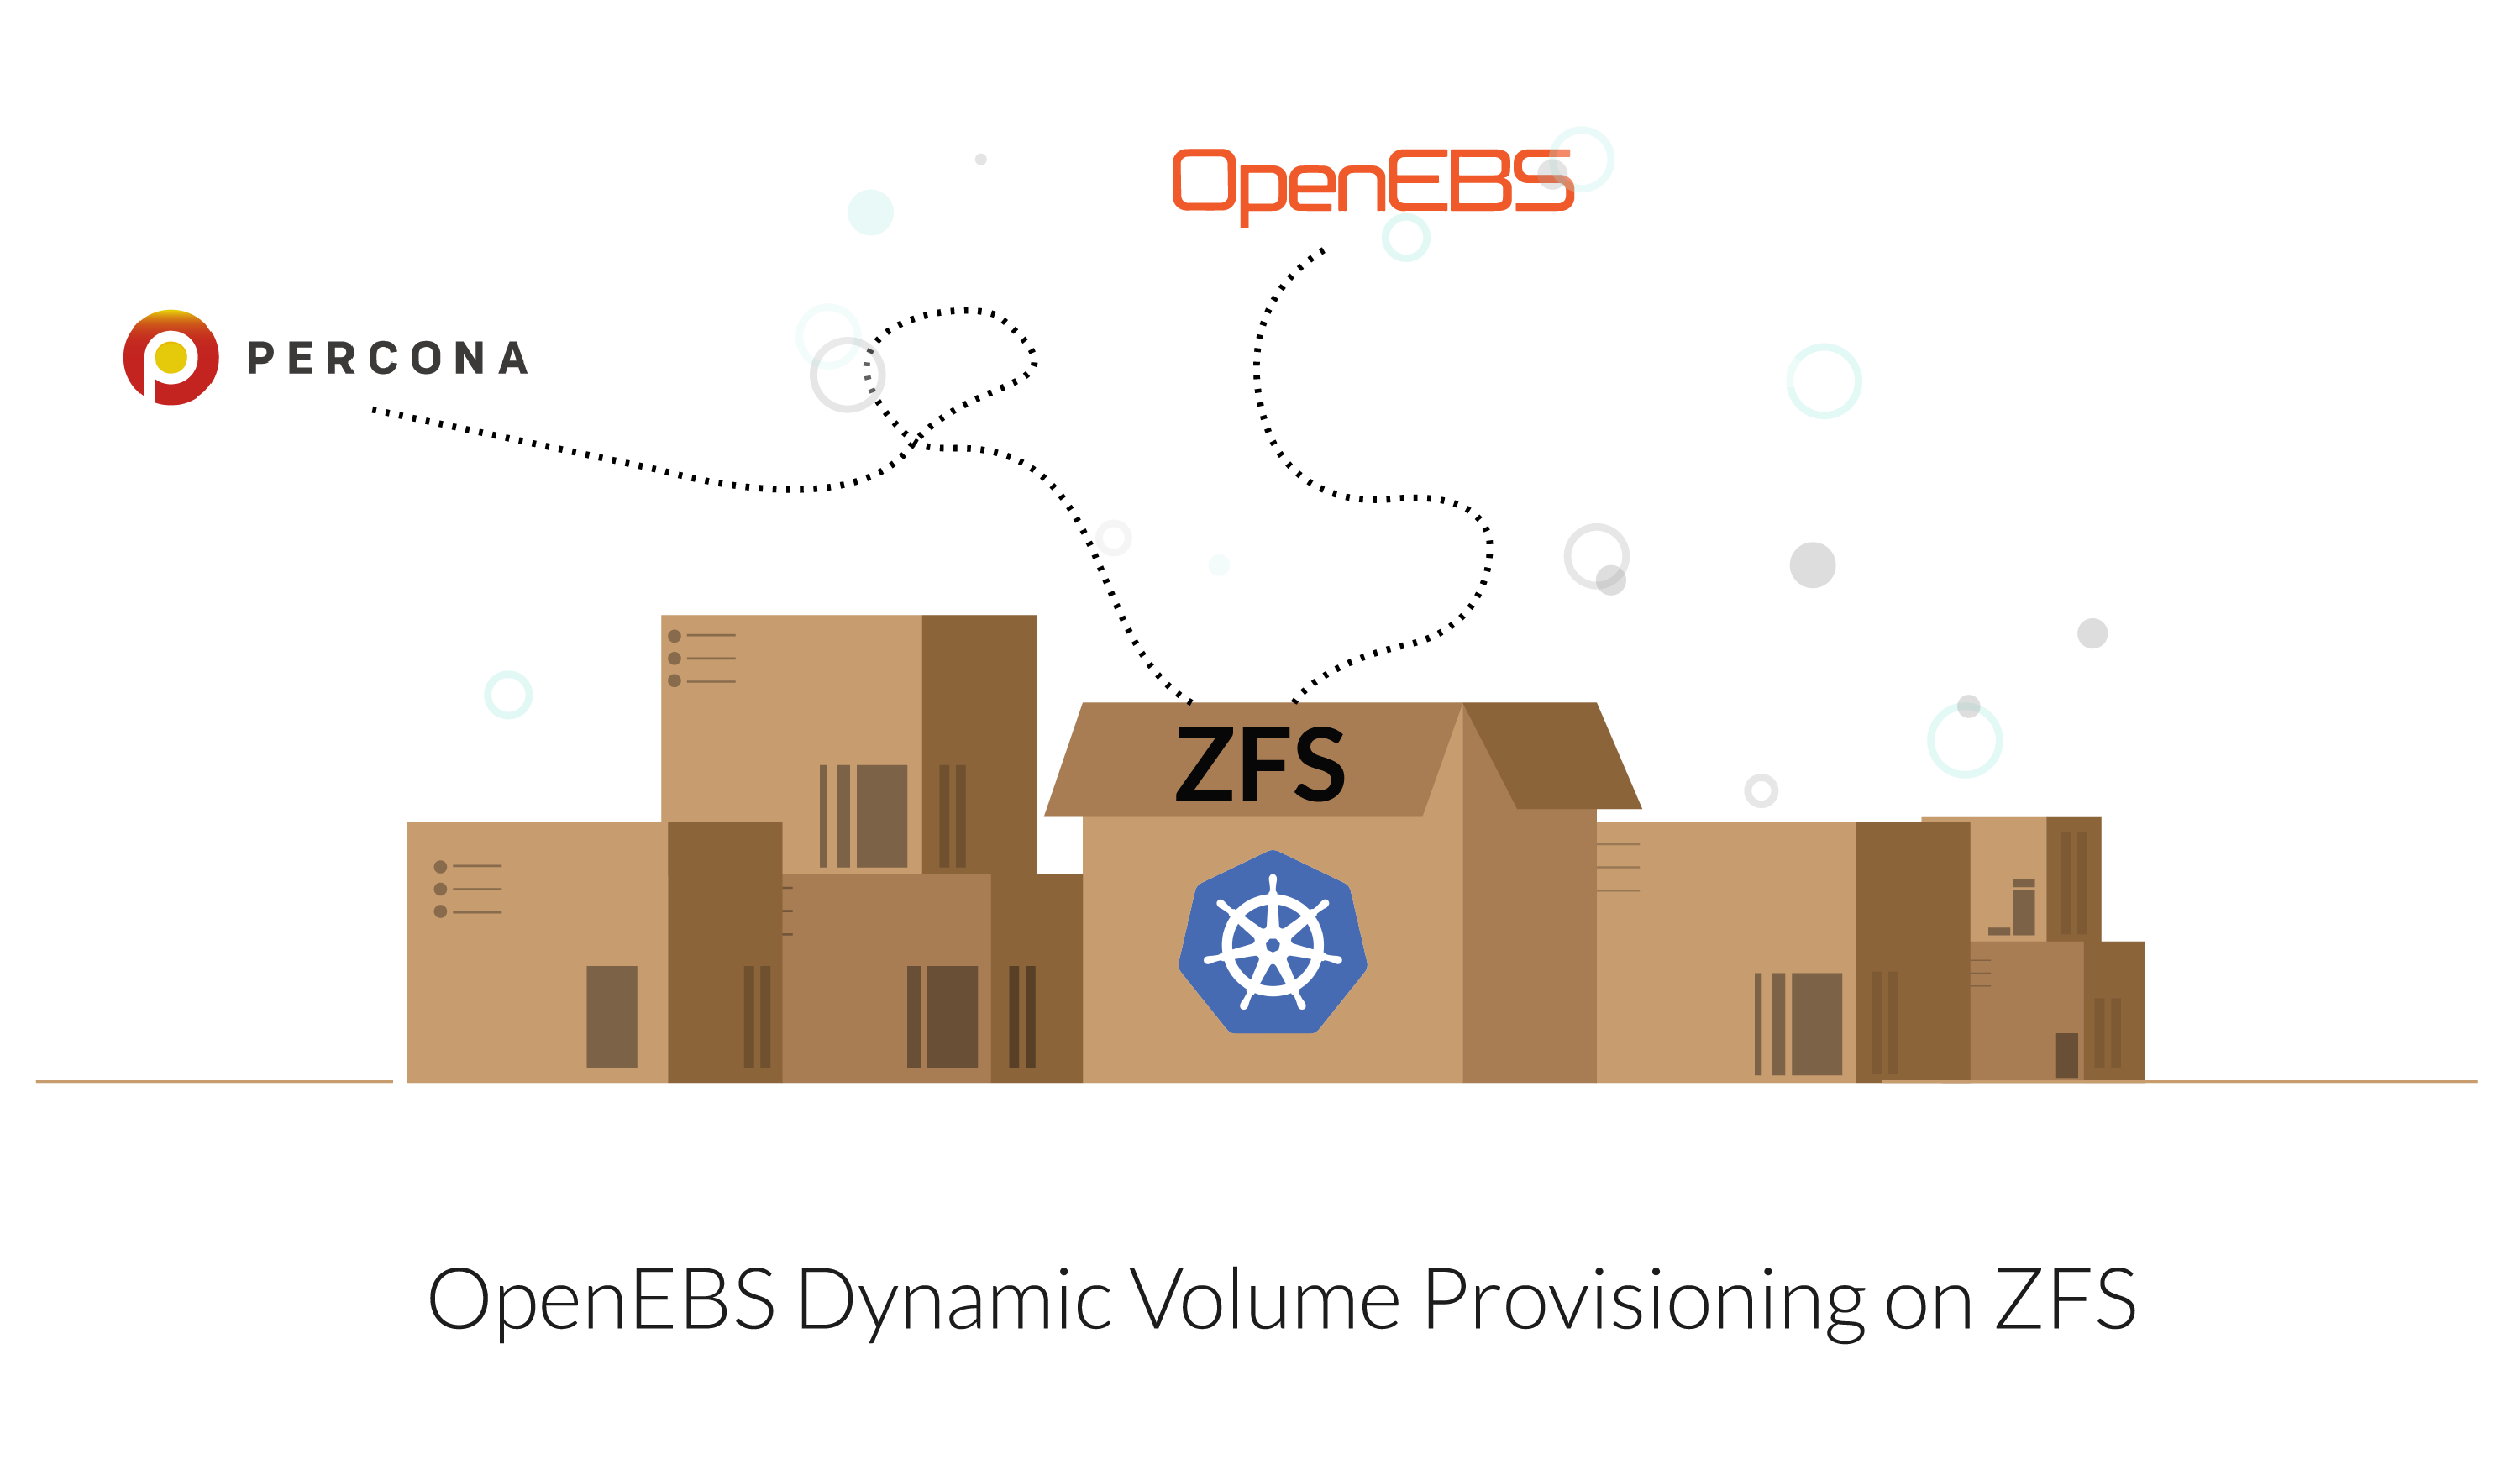 OpenEBS Dynamic Volume Provisioning on FS